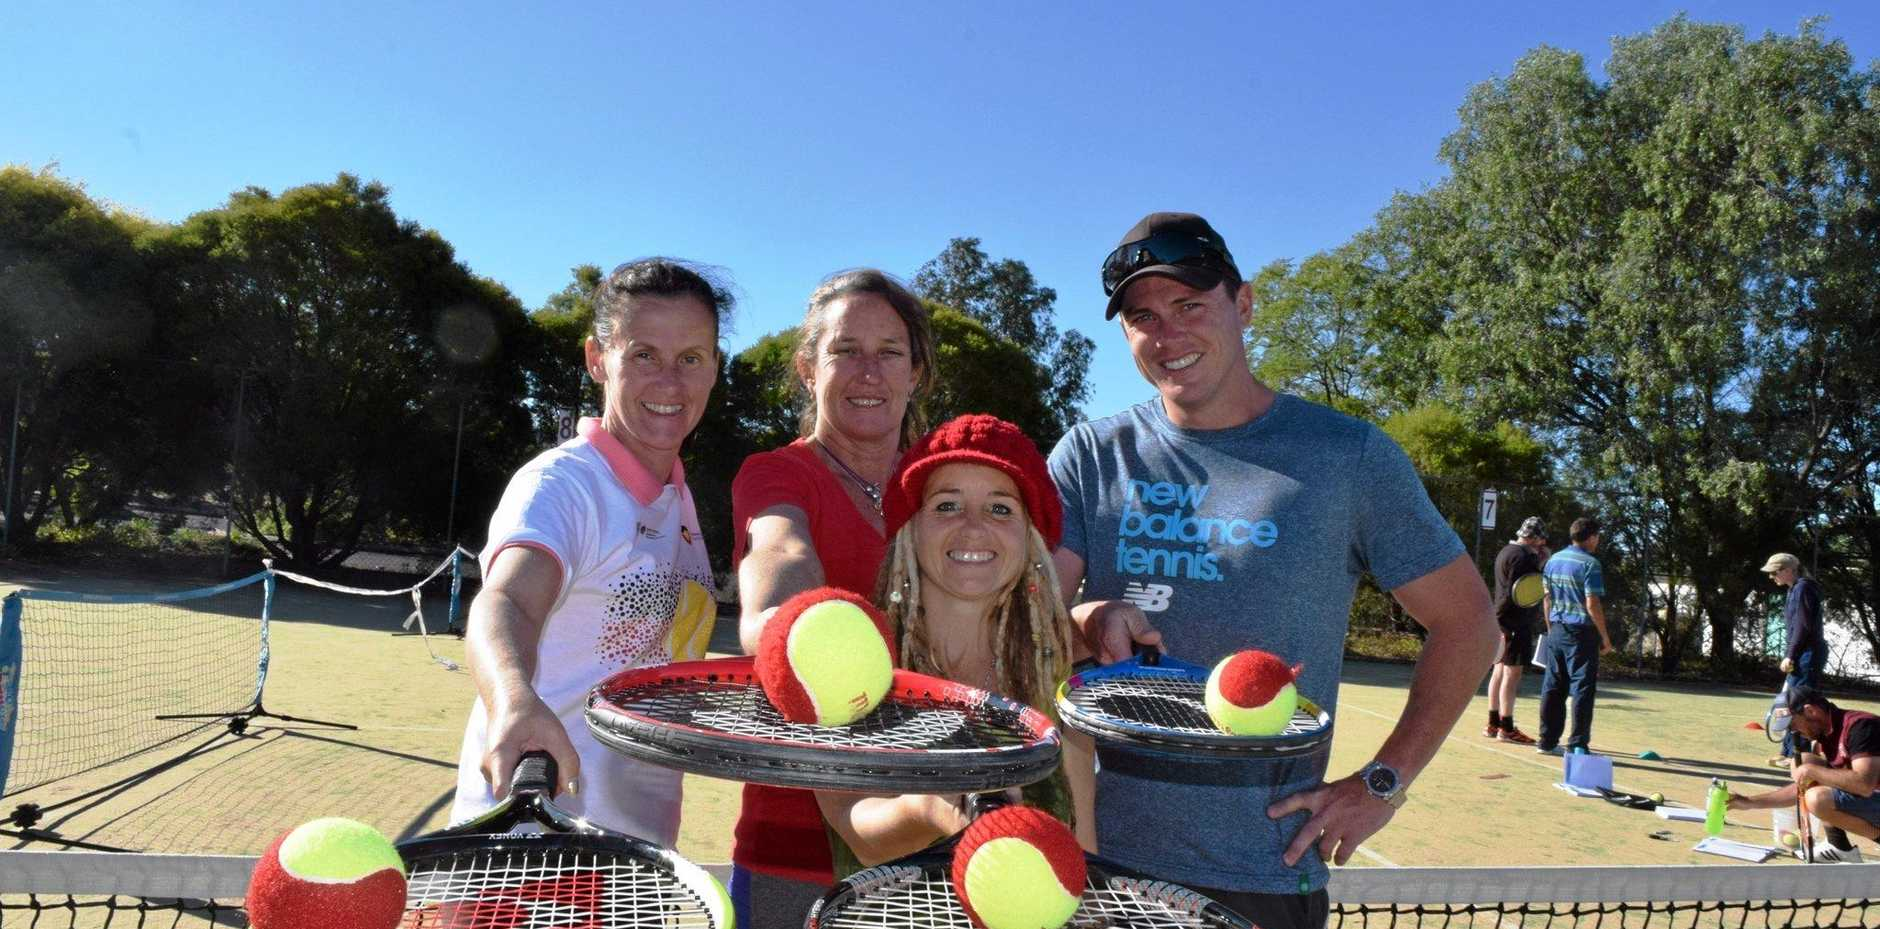 SERVE UP SUCCESS: Jessie Hodgson, Audrey Connell, Kelly Watson and Chris Moody had a ball at the tennis coaching workshop over the weekend.